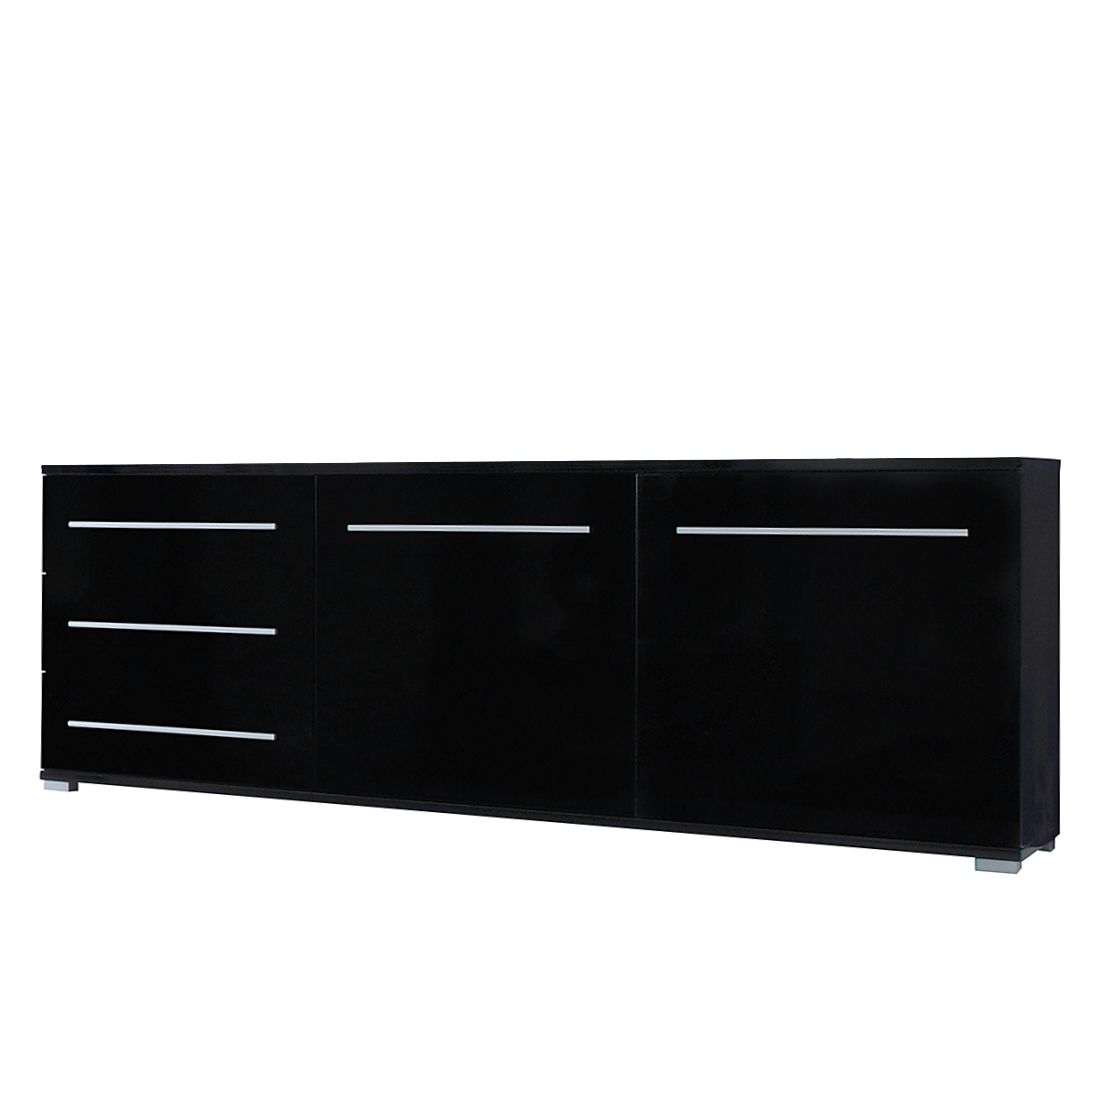 sideboard mert schwarz hochglanz. Black Bedroom Furniture Sets. Home Design Ideas